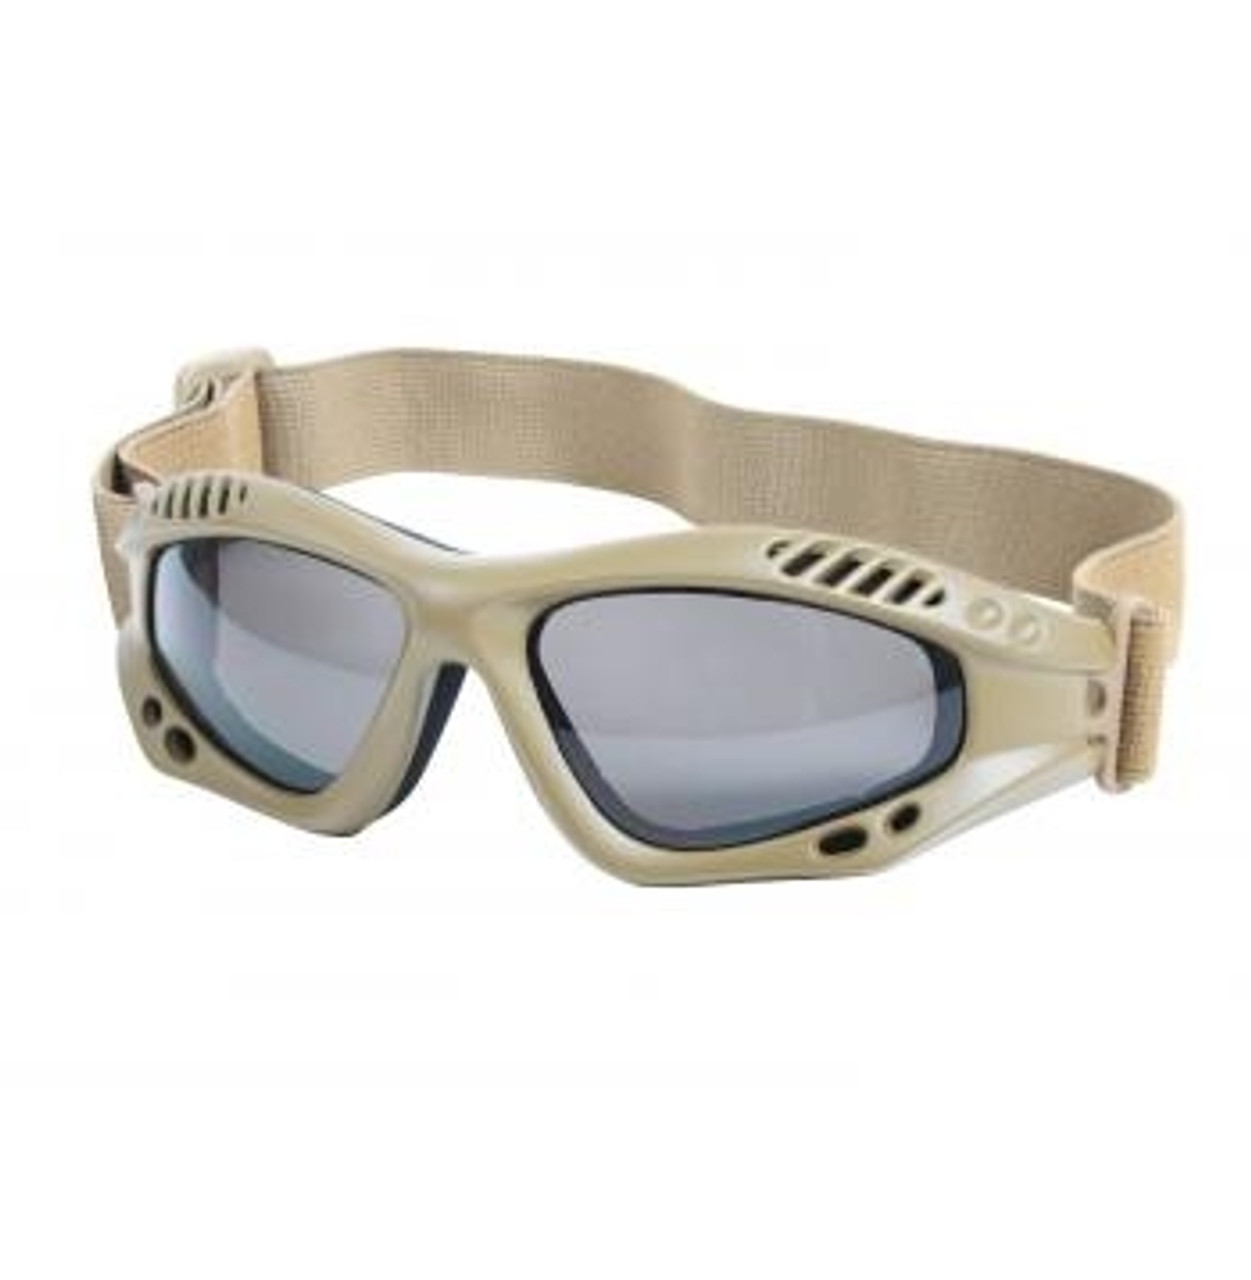 Tactical Goggles from Hessen Antique